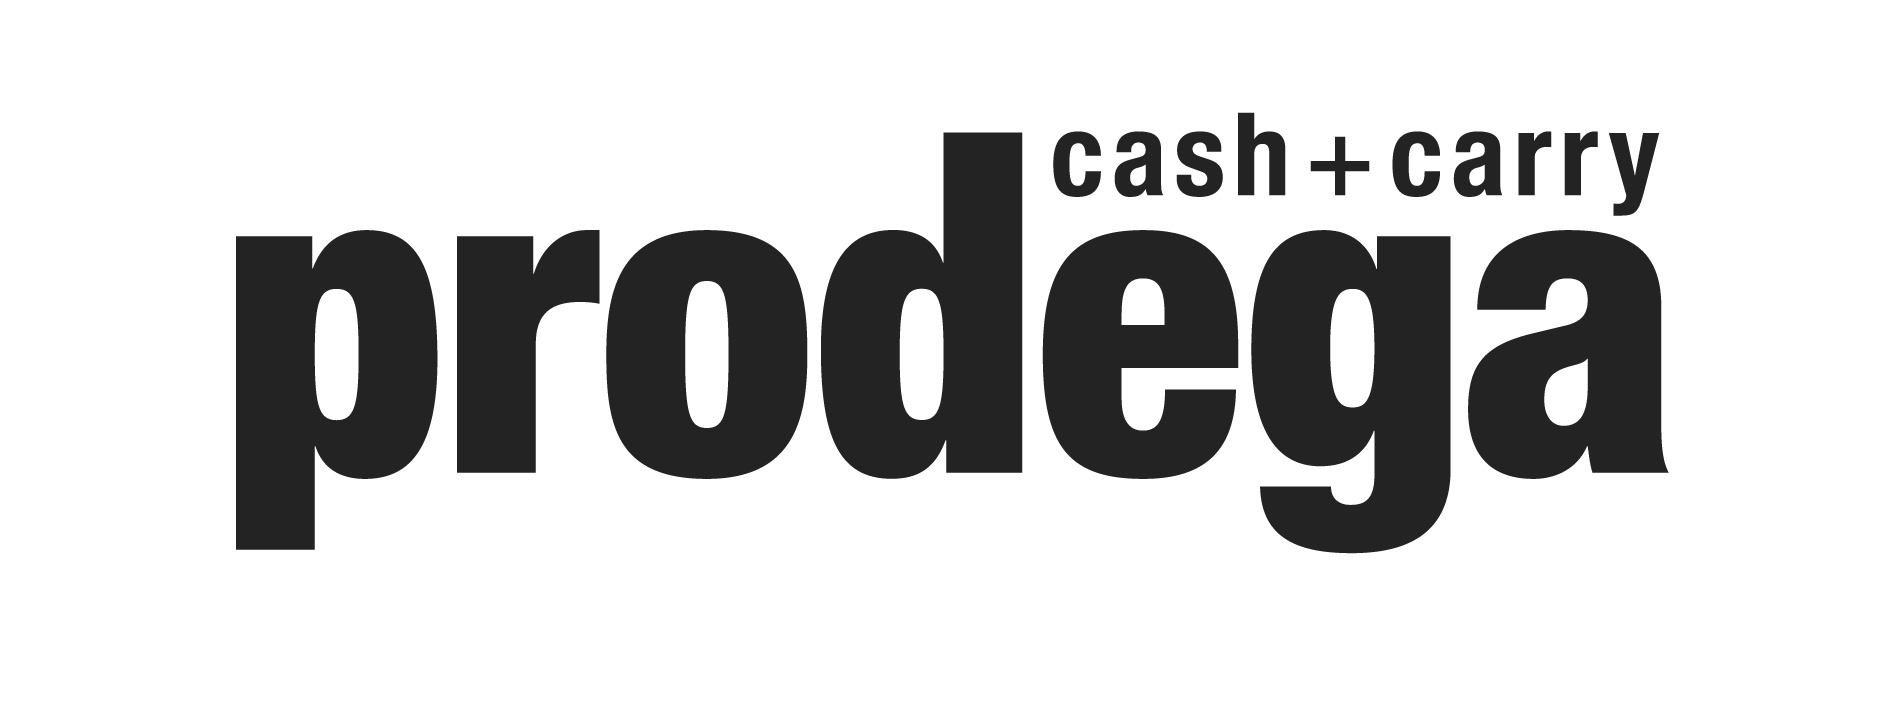 prodega cash + carry